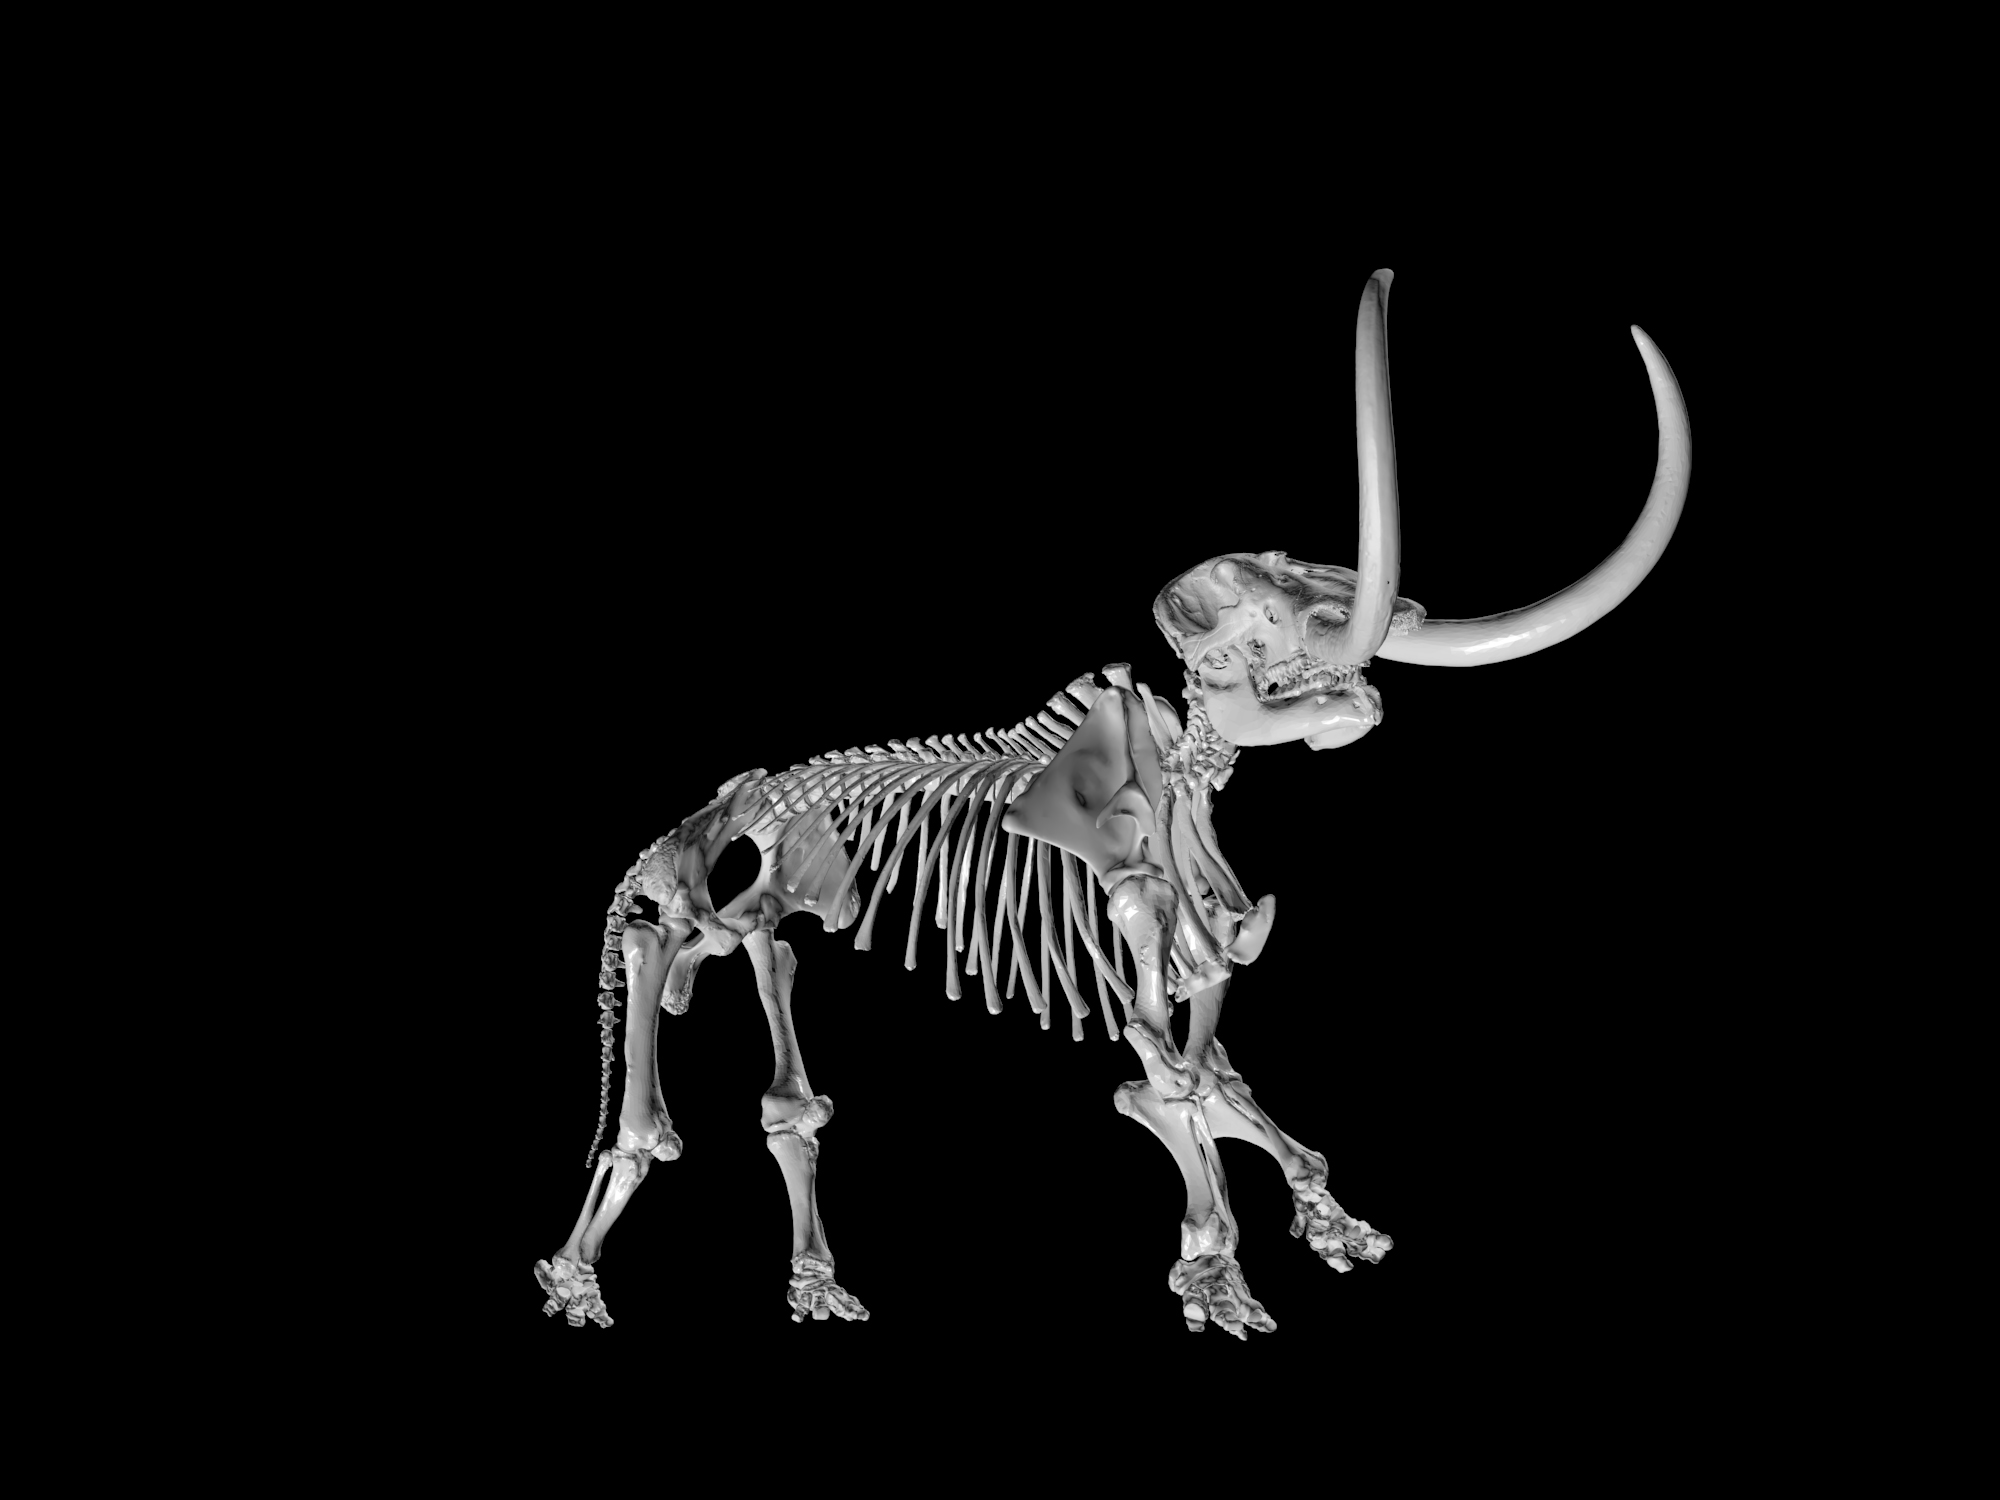 3-D digital skeleton of an adult male mastodon, part of the new University of Michigan Online Repository of Fossils website. A mounted cast of the Buesching mastodon skeleton, which is on display at the U-M Museum of Natural History, was used to align the nearly 250 bones in the 3-D digital skeleton. Image courtesy of the University of Michigan Museum of Paleontology.